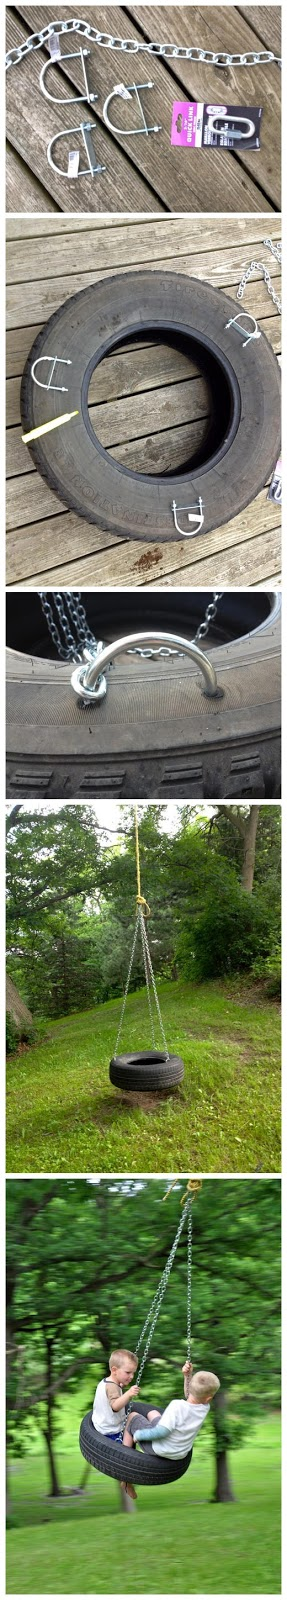 DIY : Make Swing by Old Tire